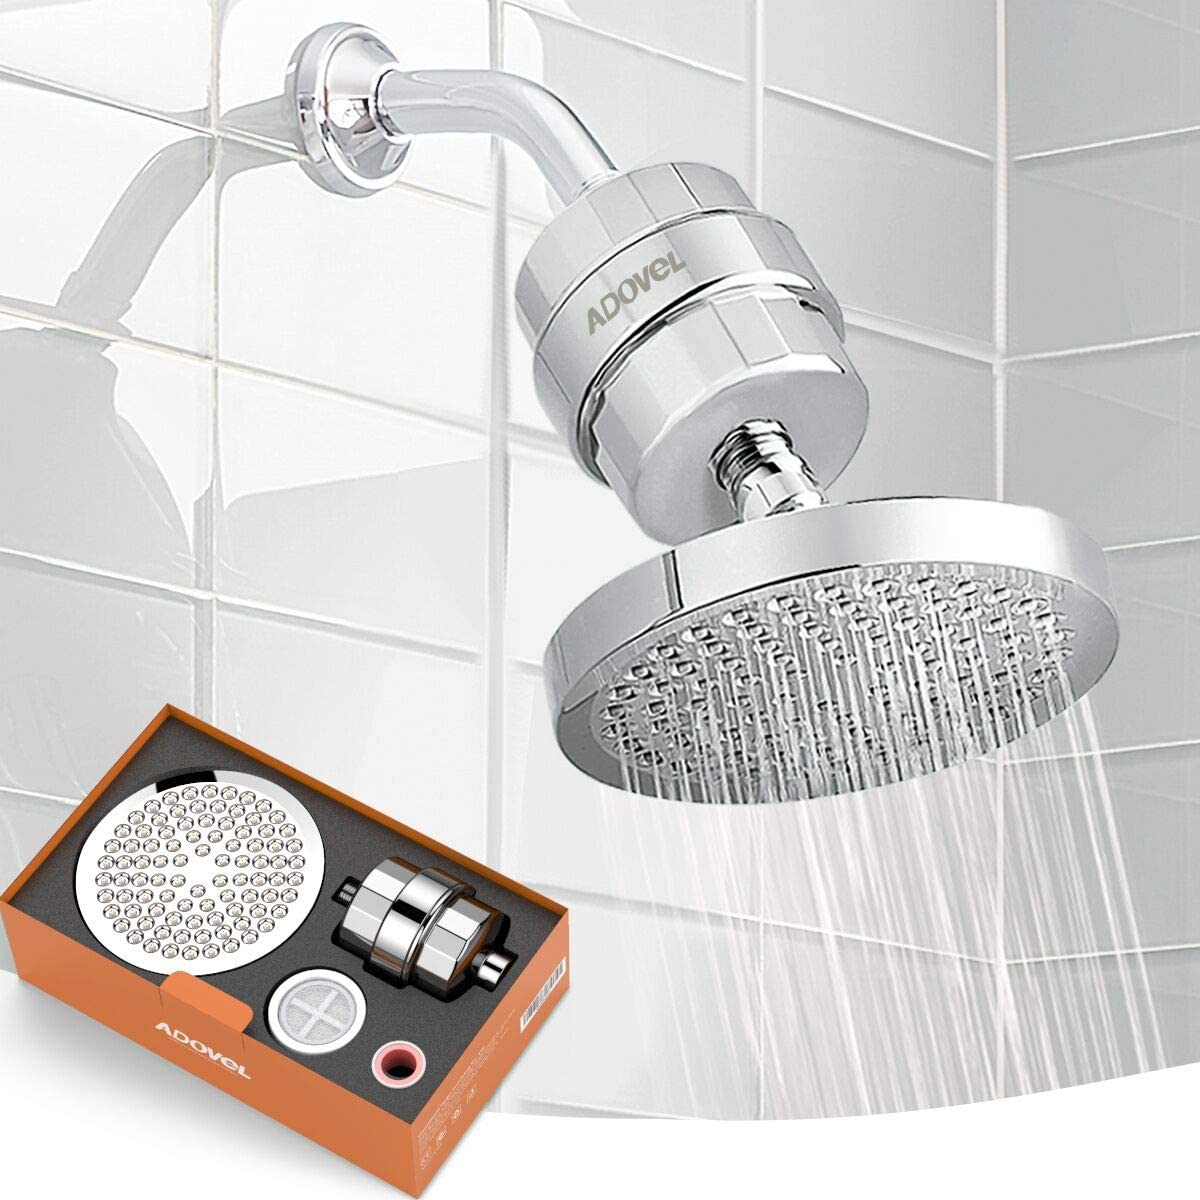 ADOVEL New arrival Mail order High Output Shower Head and Filter S 15 Water Hard Stage